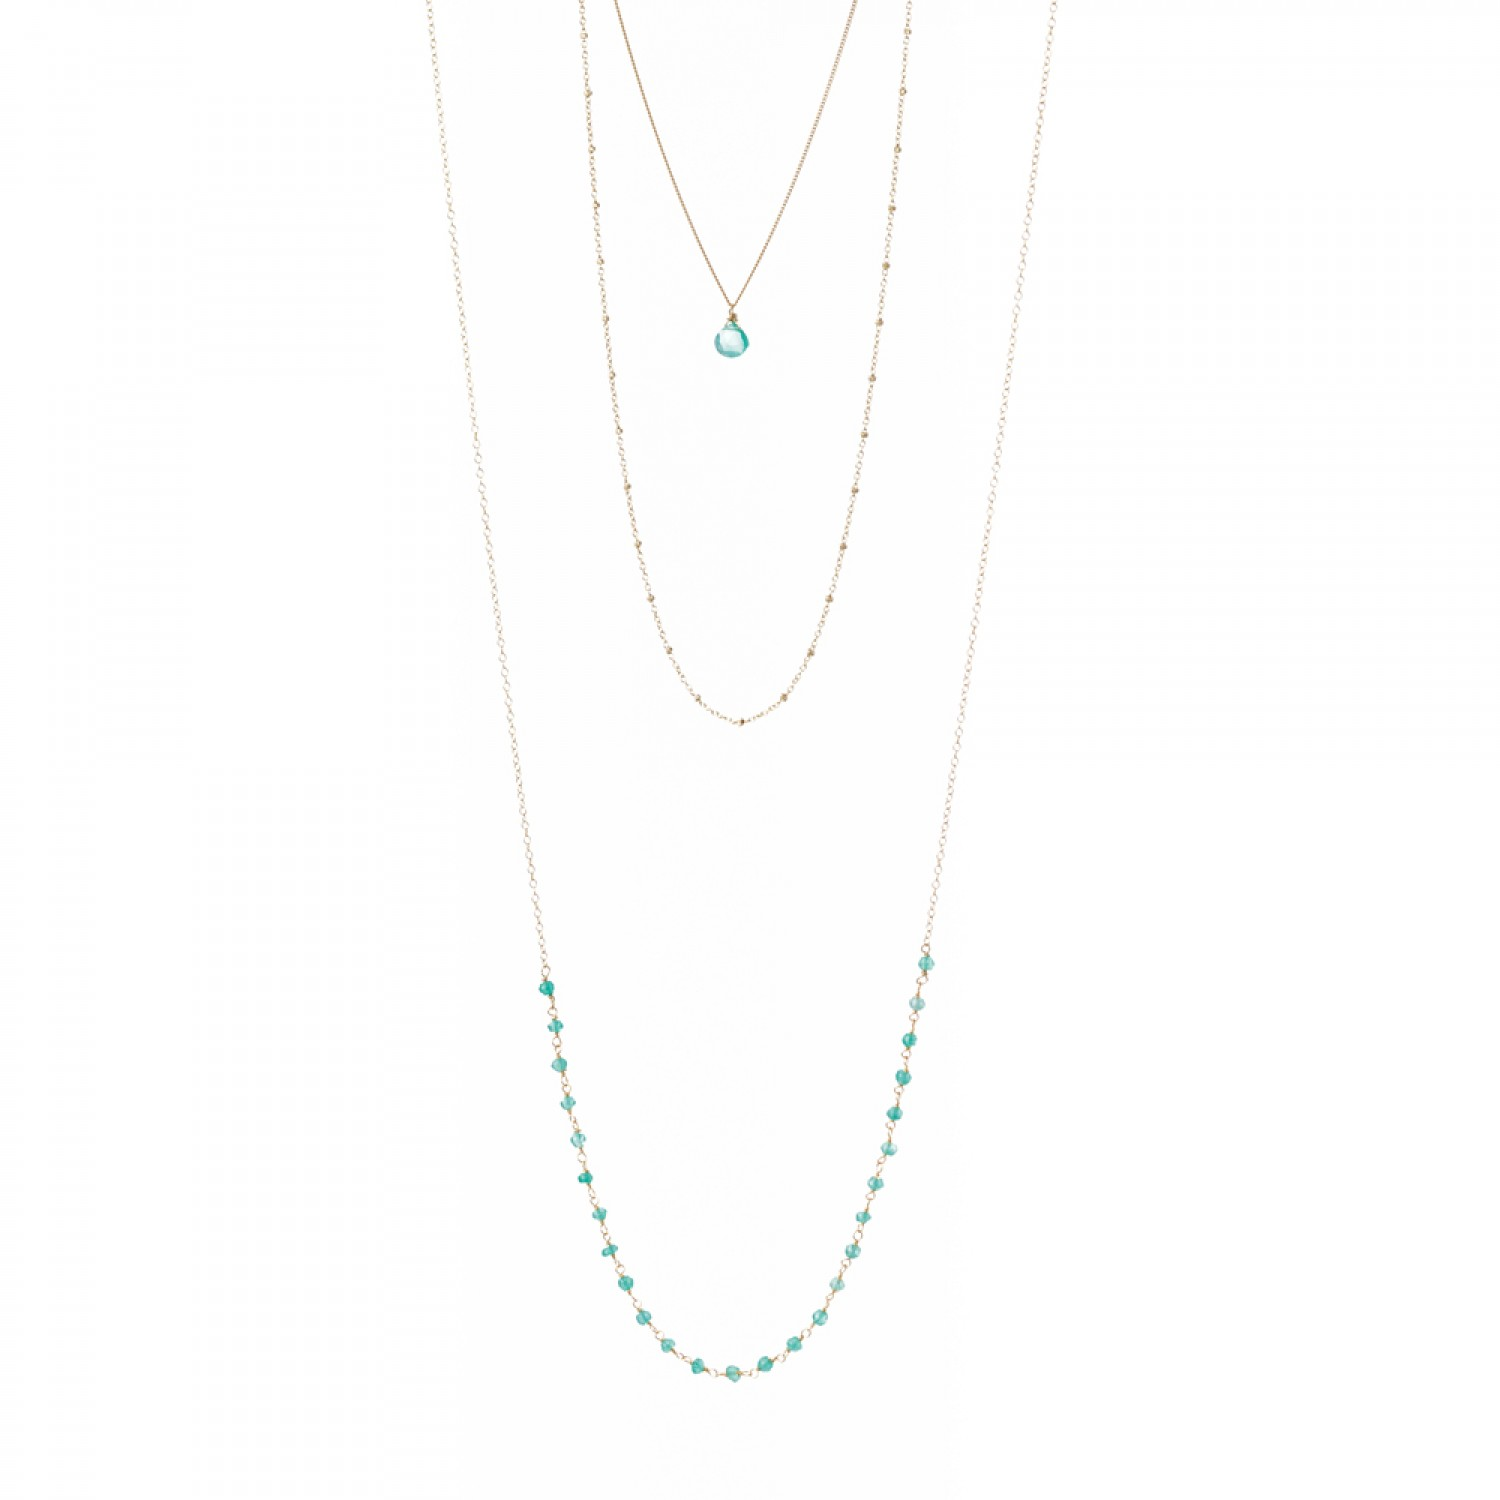 Triple Layered Green Onyx Necklace